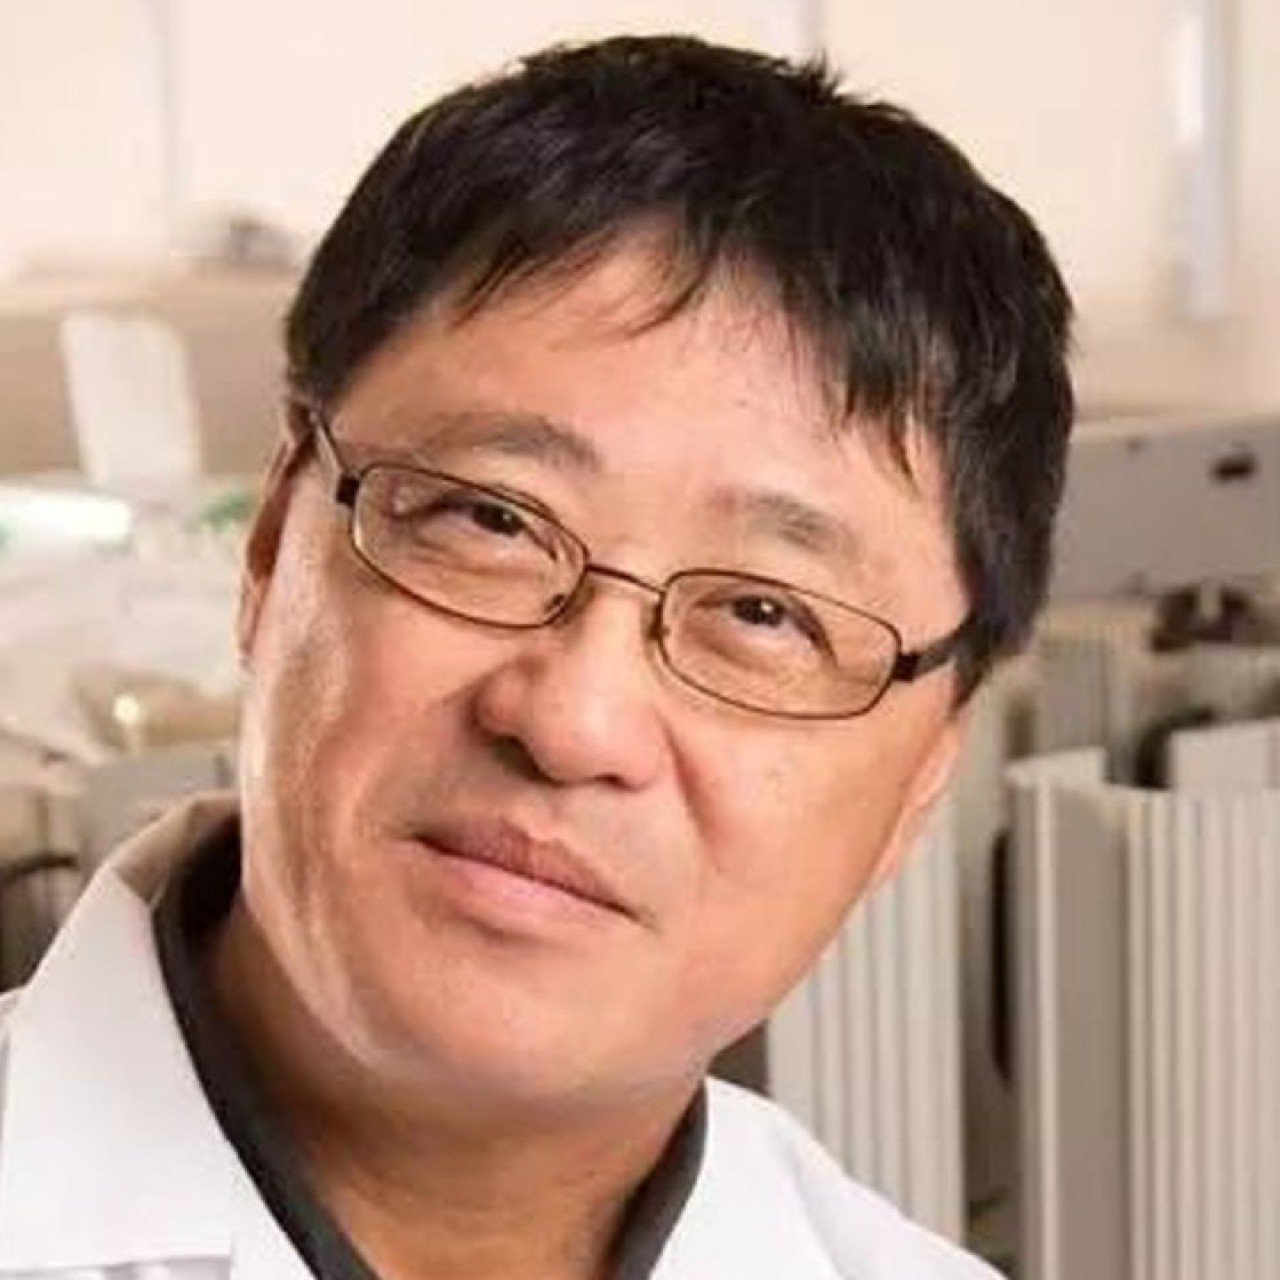 e57ec09cc Was pioneering Chinese scientist Chen Lieping 'unfairly overlooked' for  Nobel Medicine Prize?